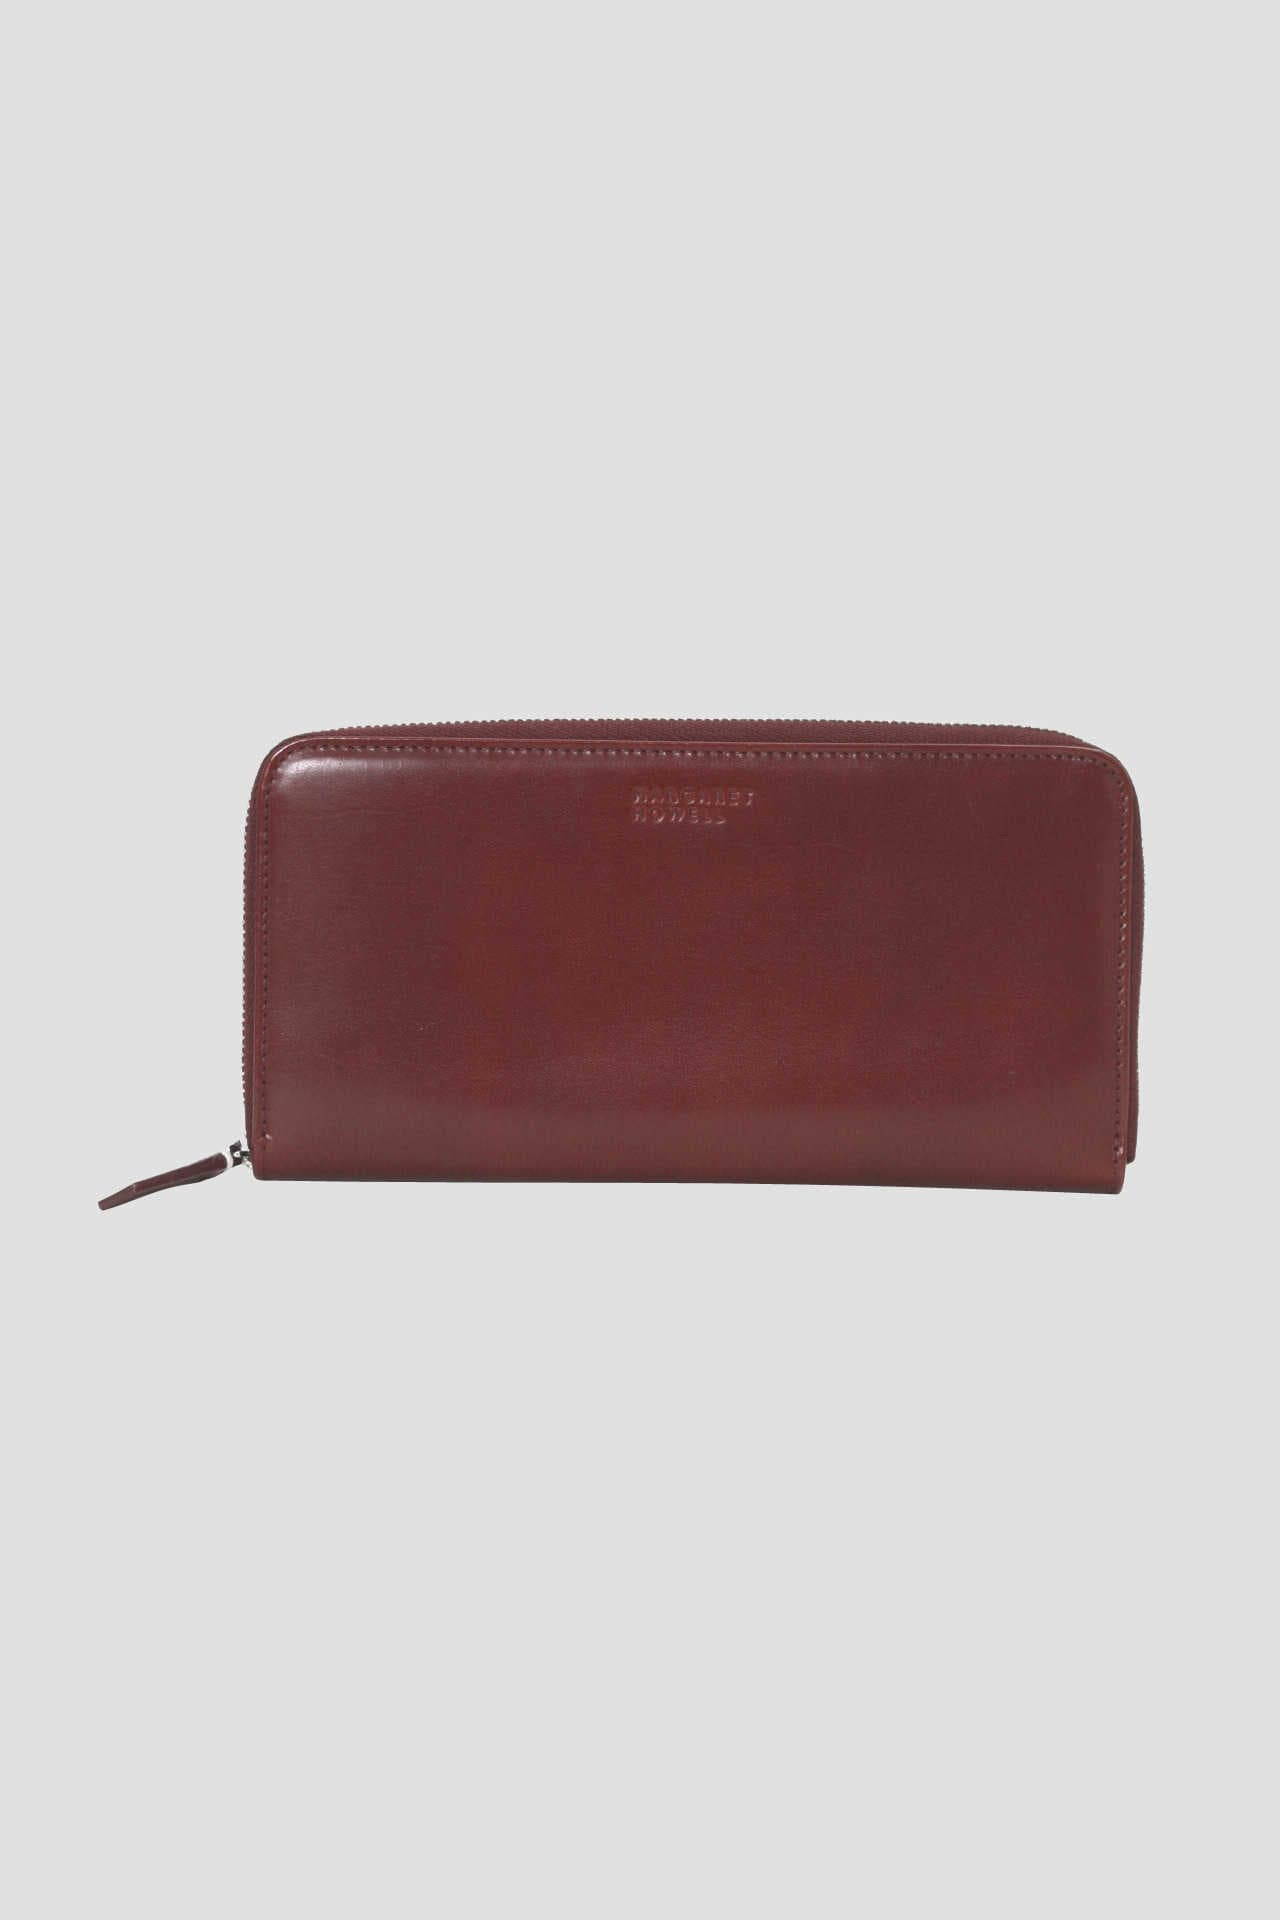 SMOOTH LEATHER WALLET1